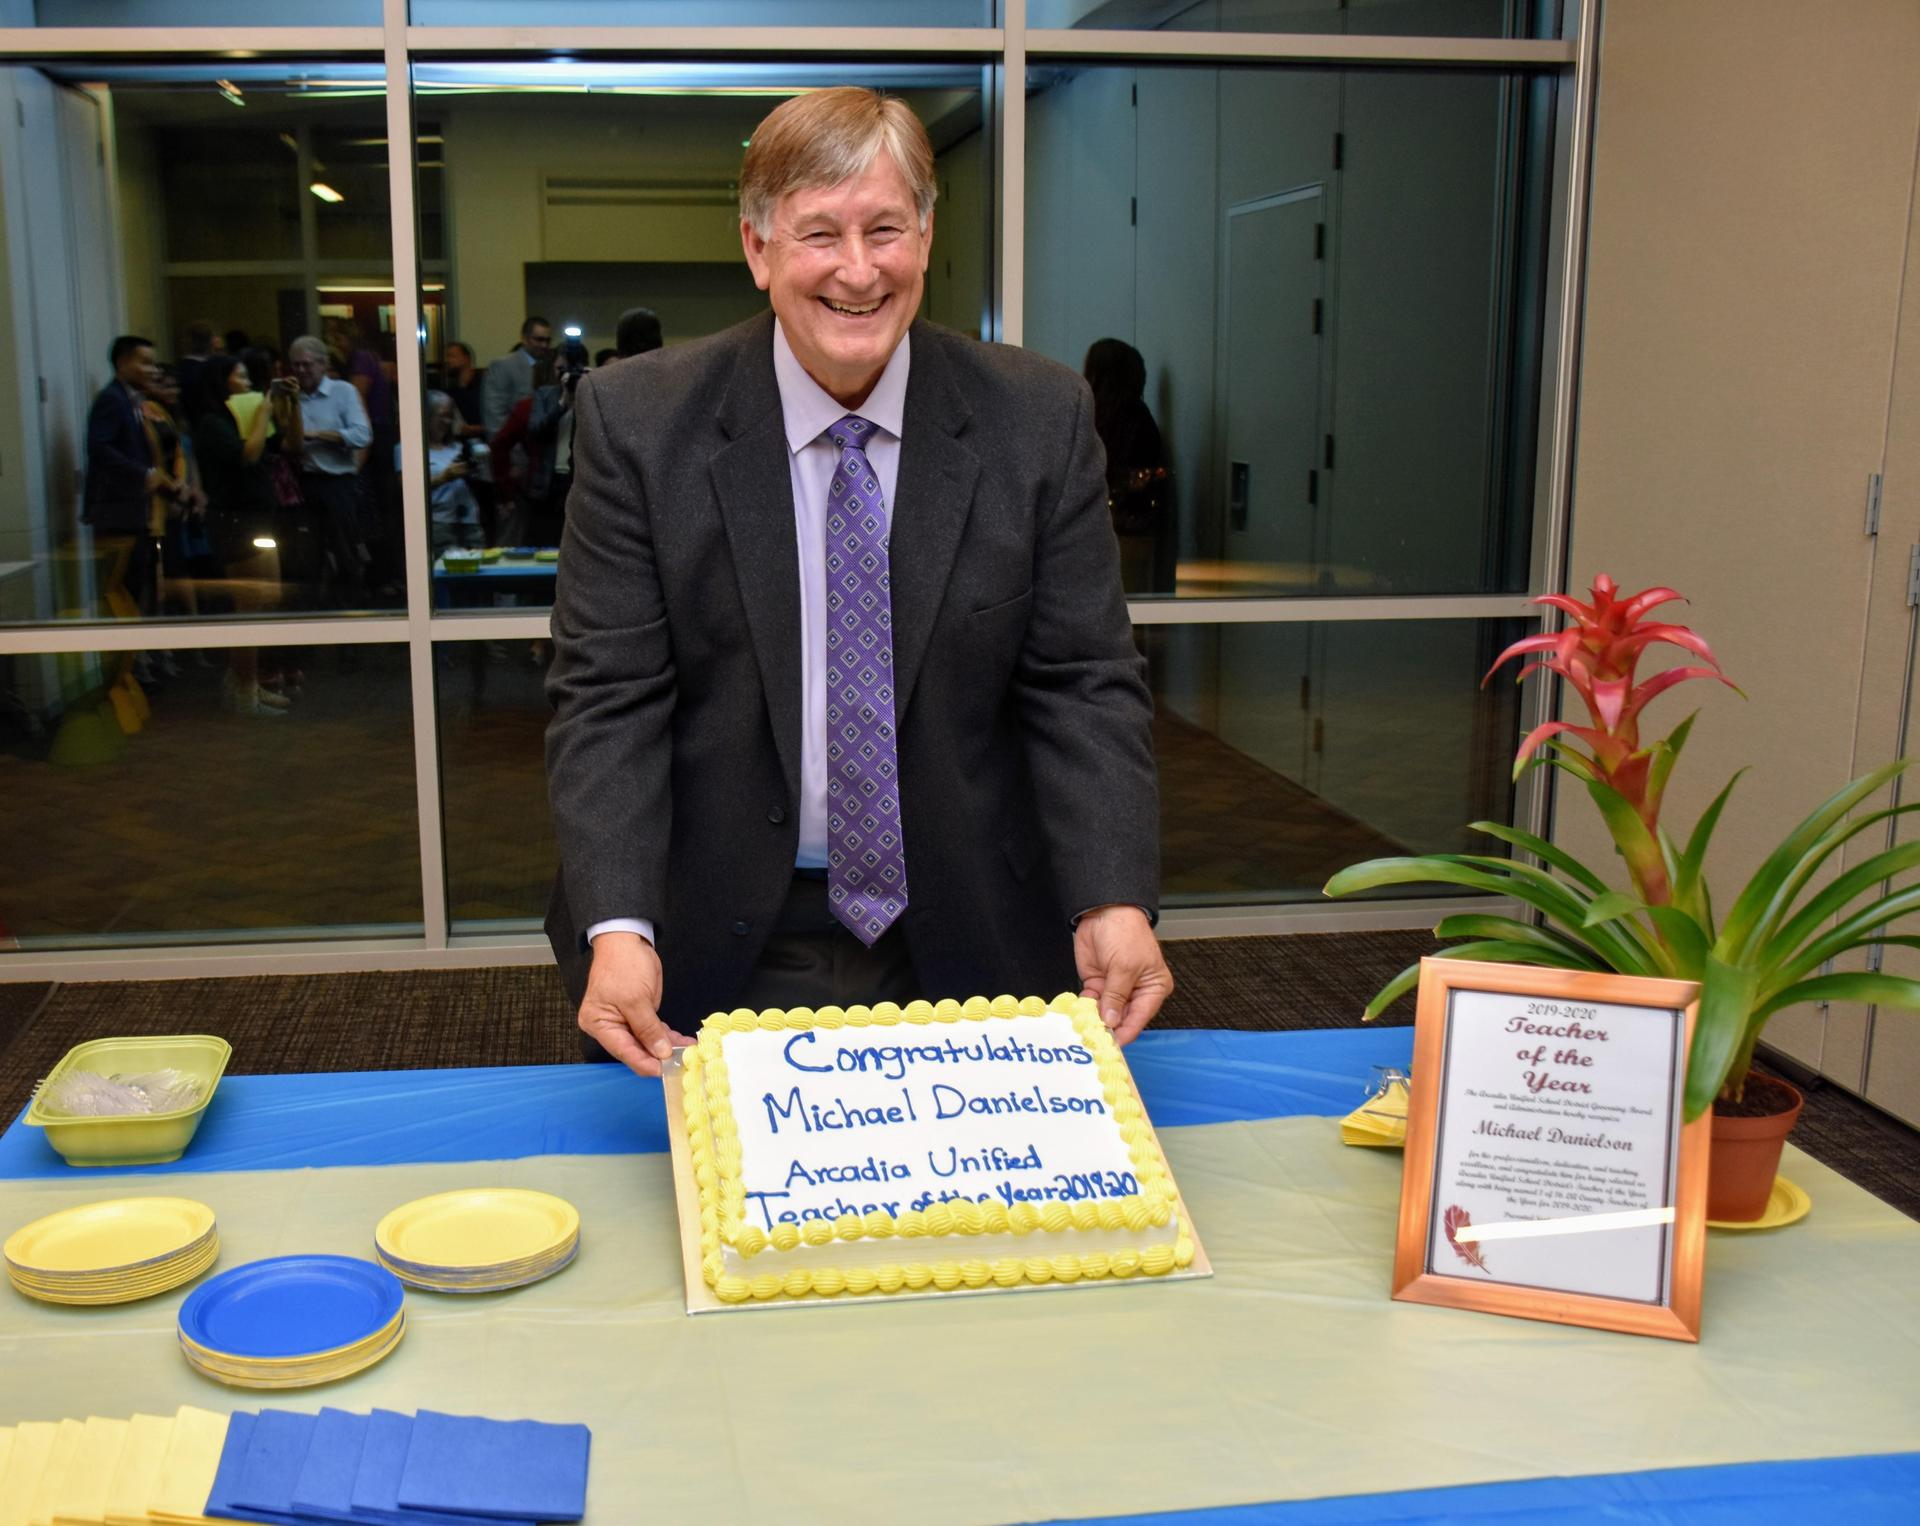 Mike Danielson with celebratory cake